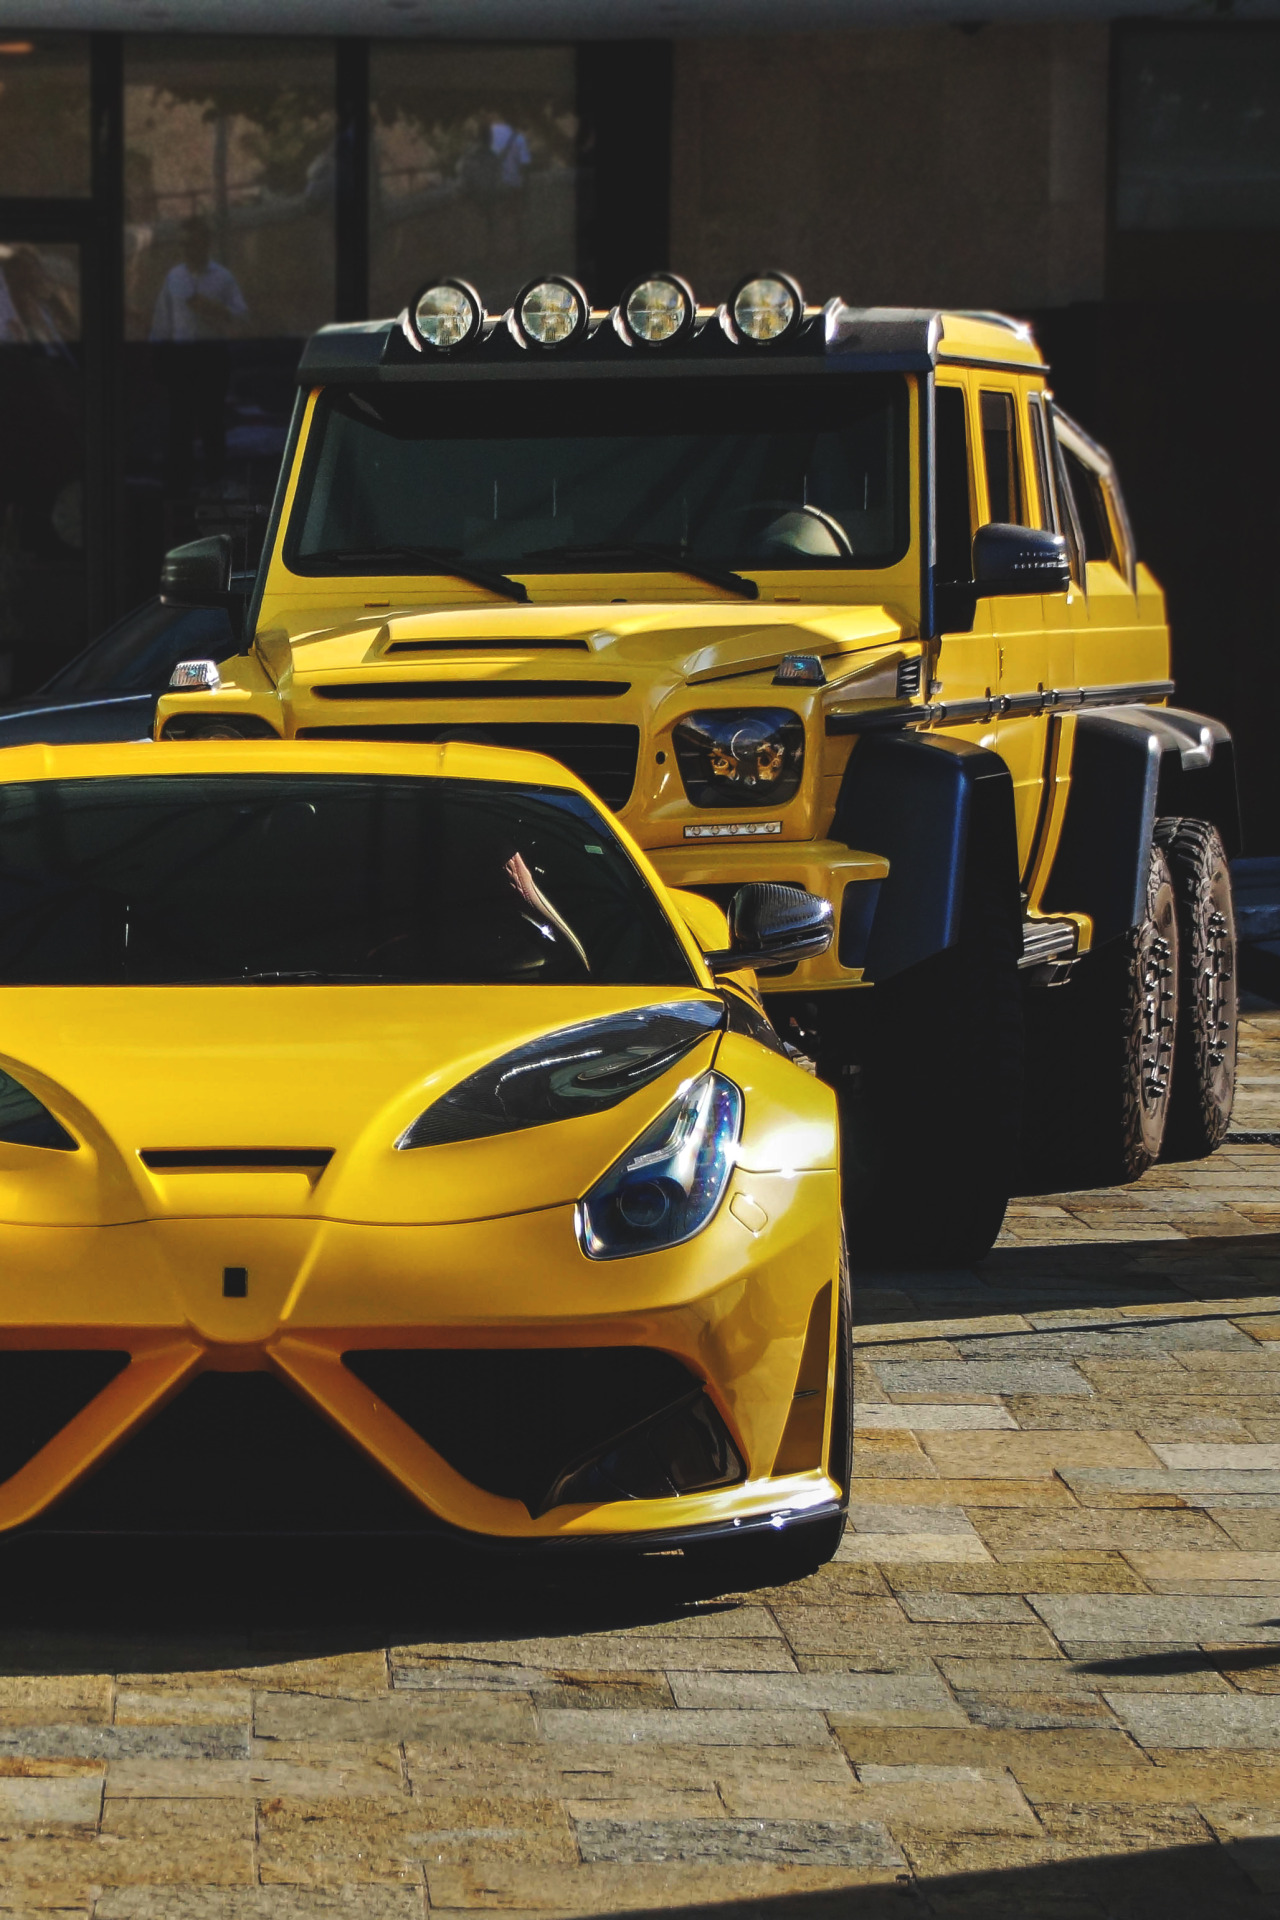 ferrari f12 berlinetta yellow mercedes tuning cars